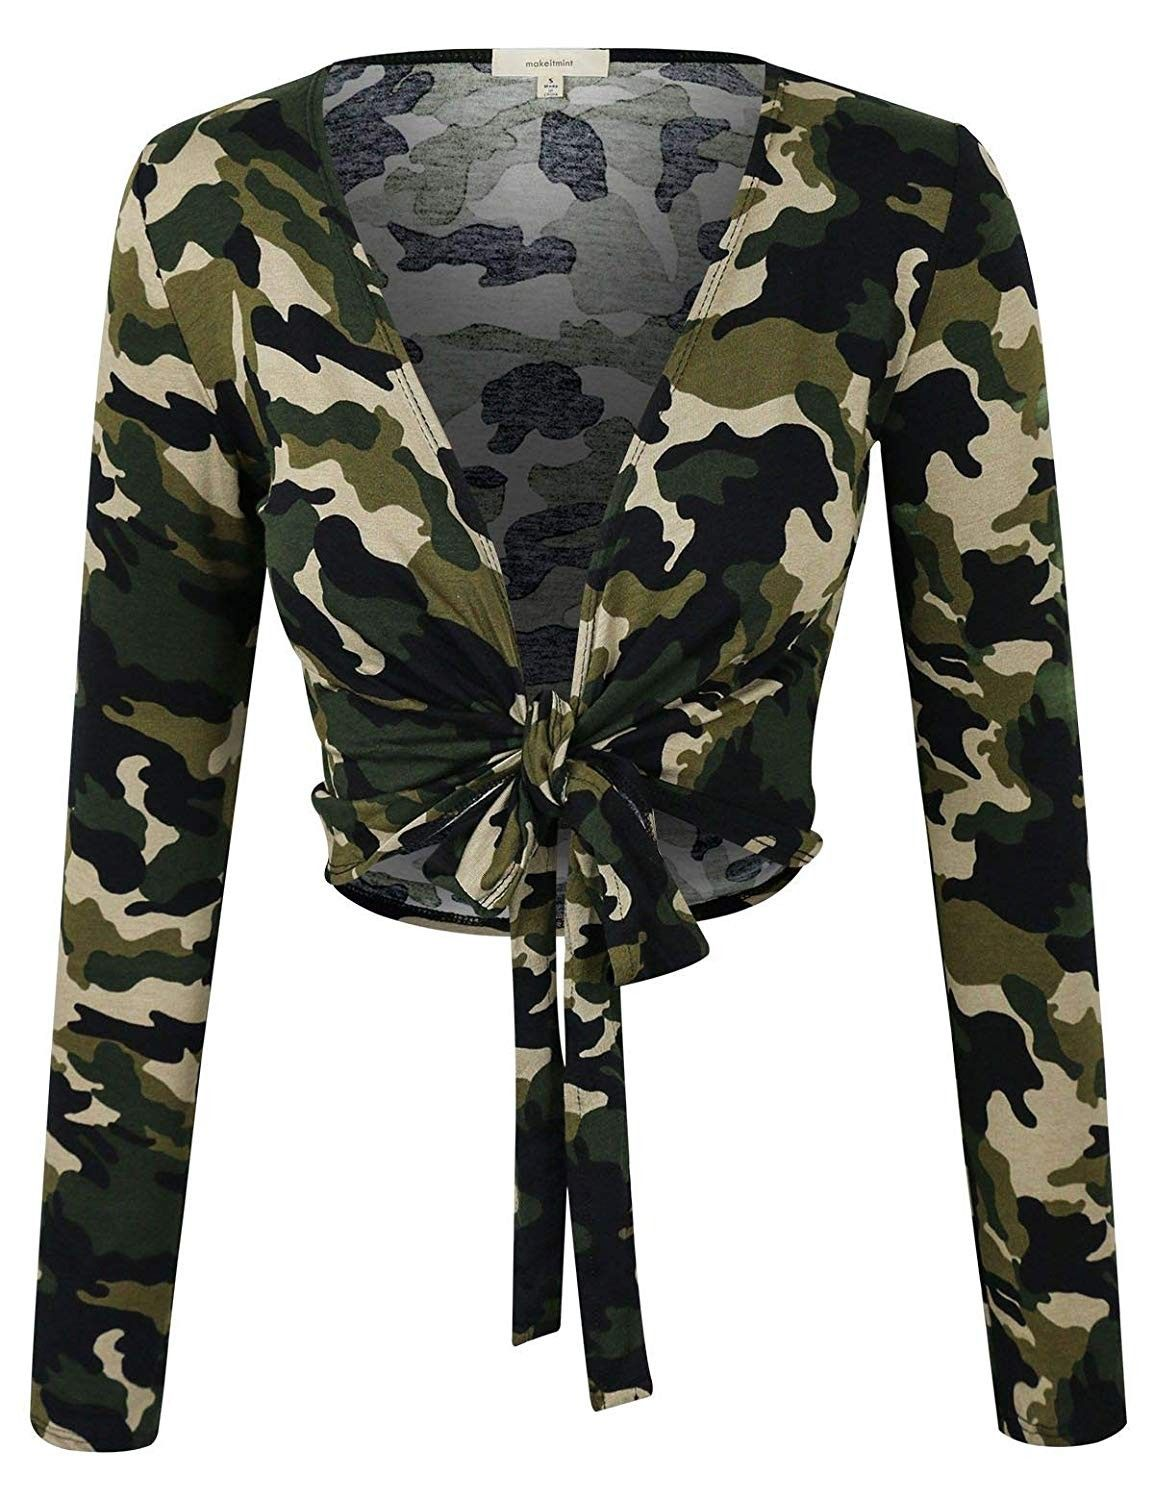 Women's Camouflage Front Tie Knot Long Sleeve Cropped T-Shirt Top YIL0025-CAMO-SML - CO18OSQNAL0 - S...